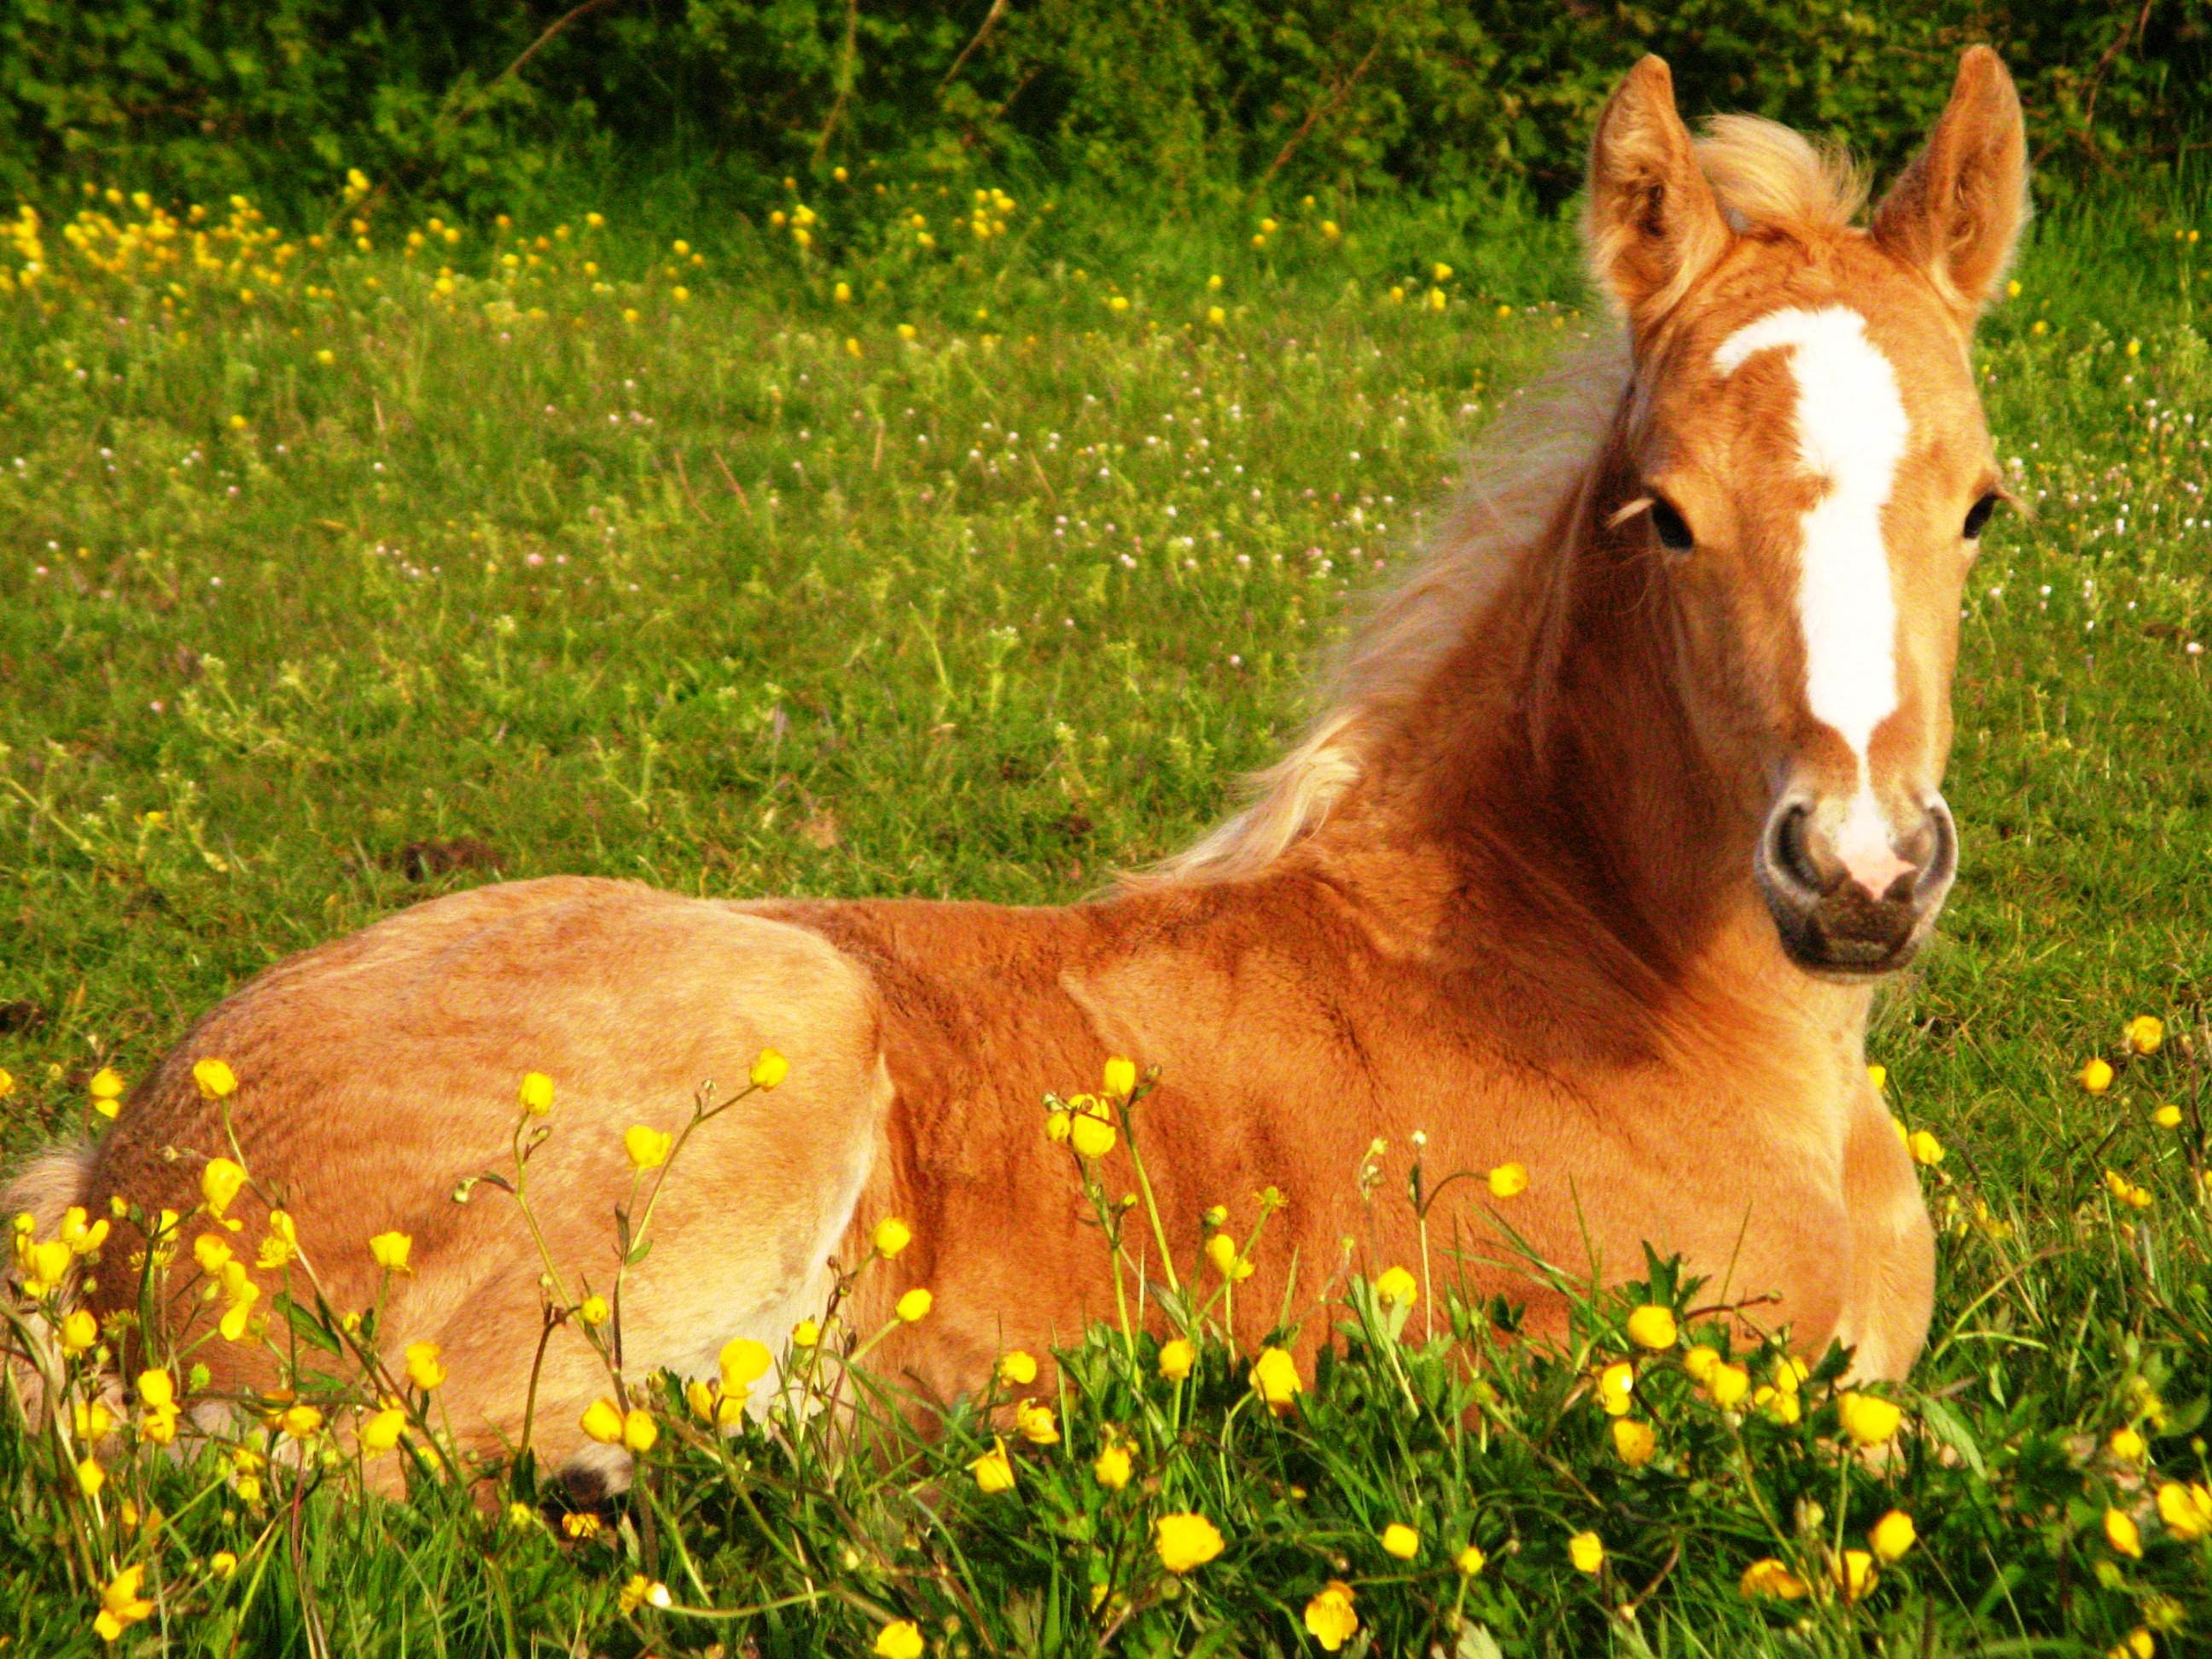 Cute Horse Wallpapers 54 Pictures